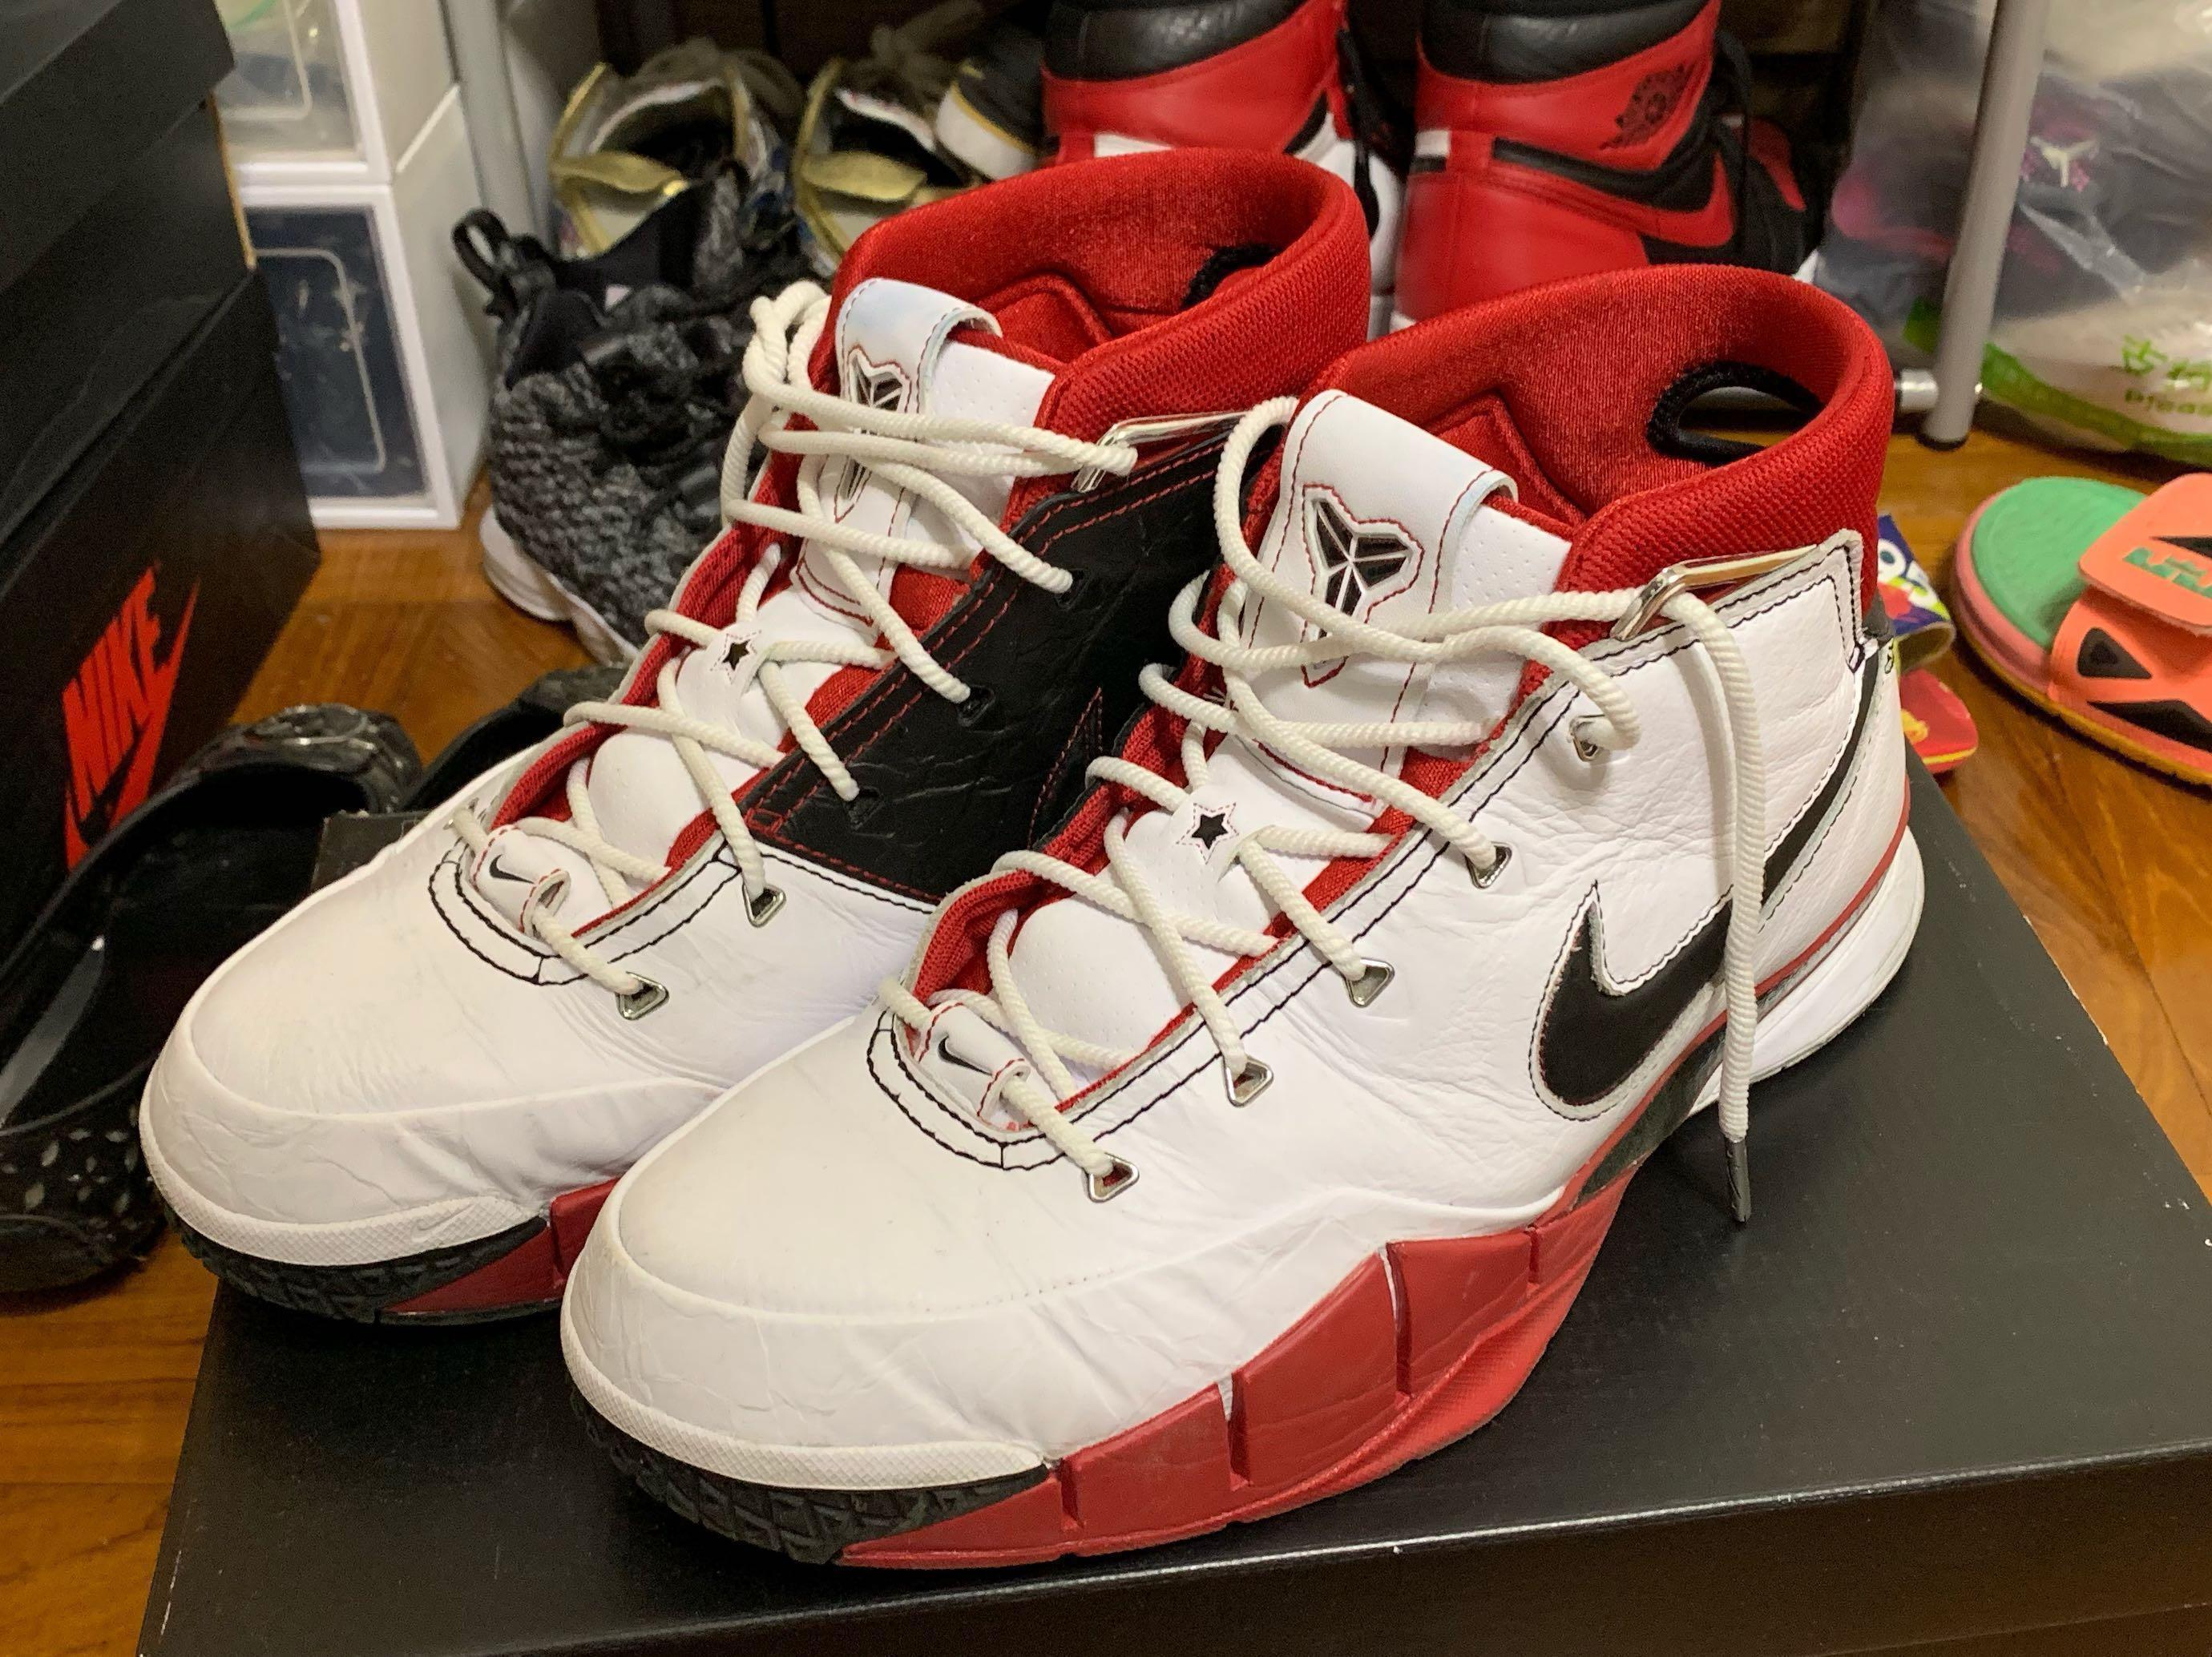 Nike, Kobe 1 Protro, all star, US11